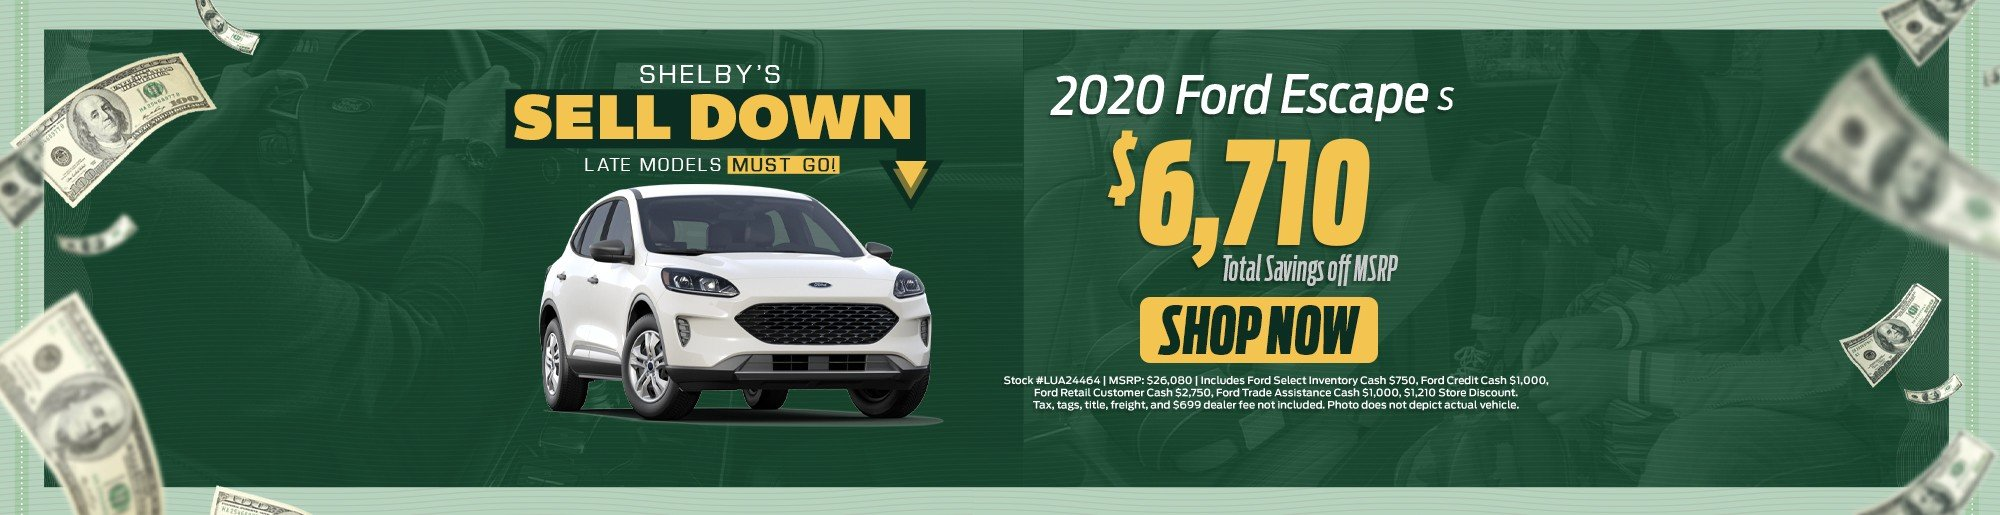 Ford Escape deals near me, Key Scales FL